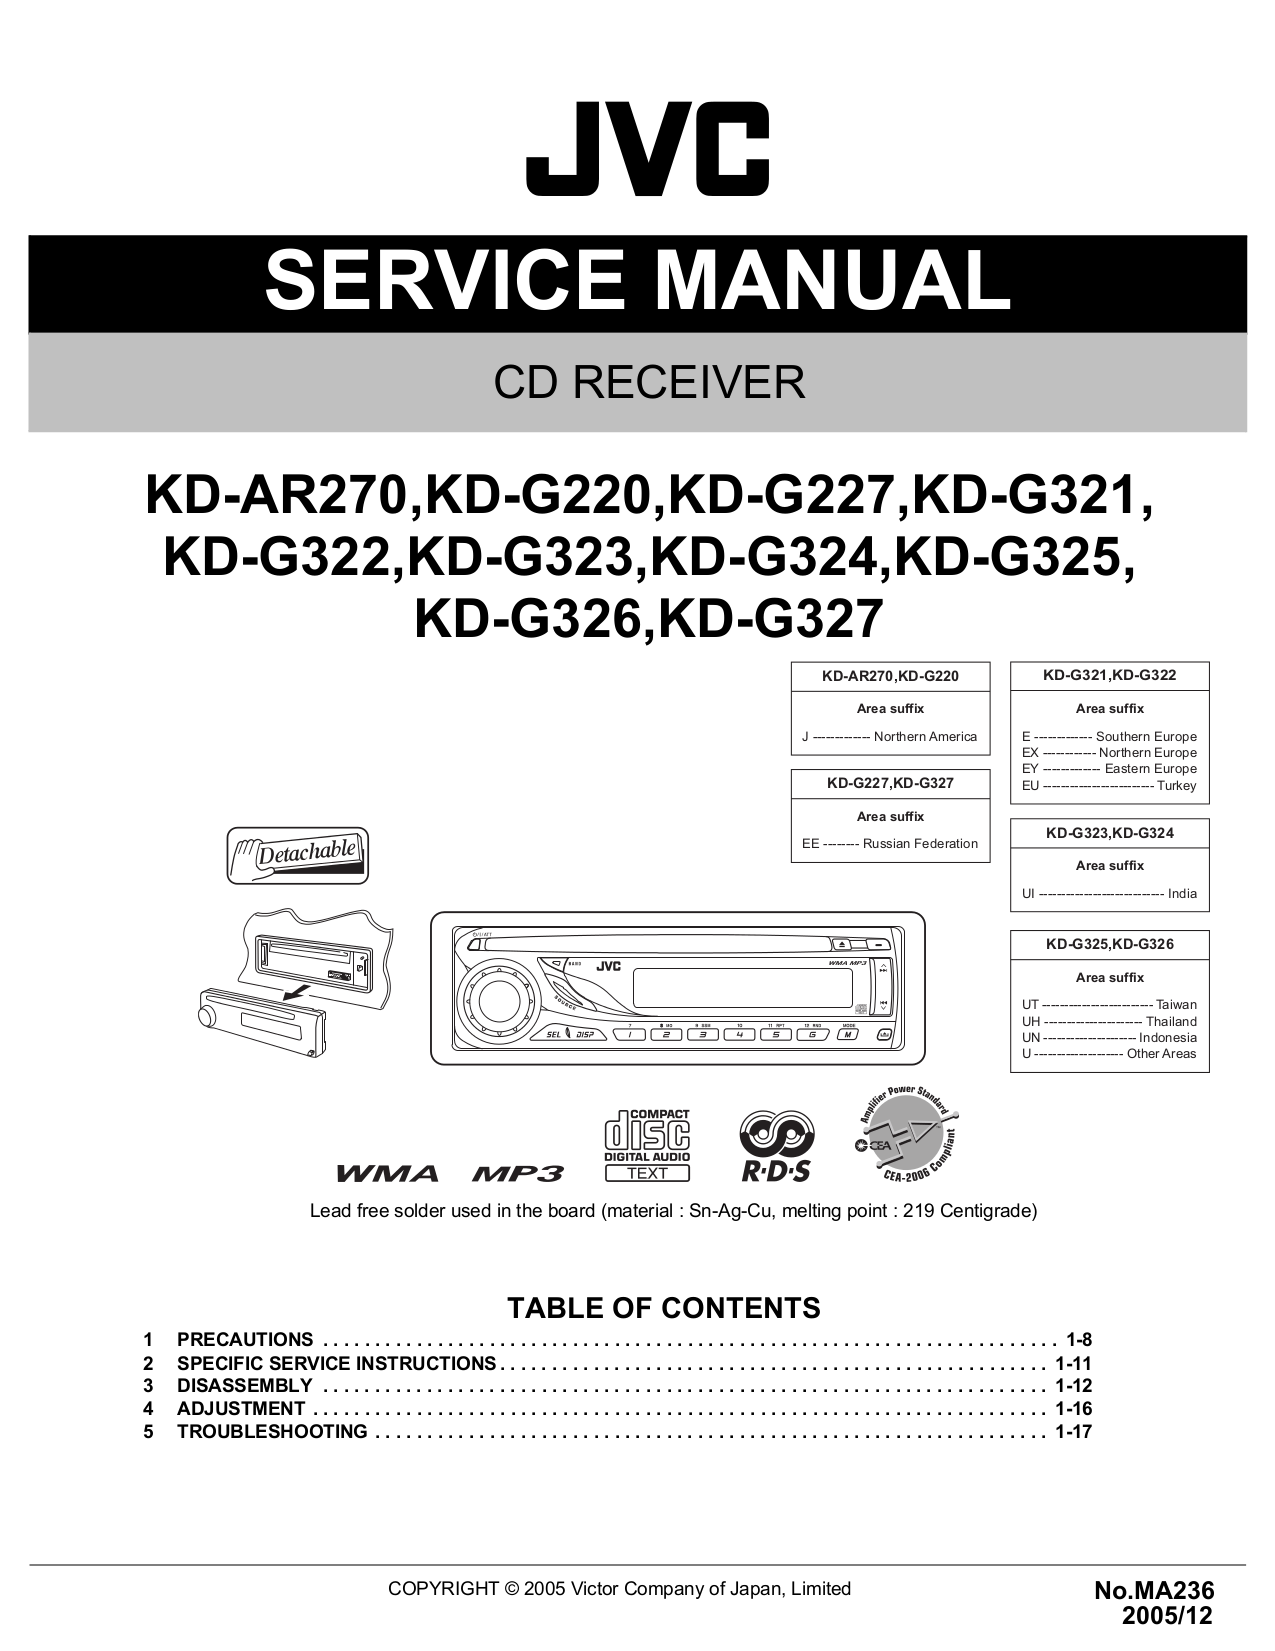 301398d1352582317 Magnitola Avtozvuk jvc kd ar270 kd g220 g227 g321 g322 g323 g324 g325 g326 g327.pdf 0 pdf manual for jvc car receiver kd s51 jvc kd-r300 wiring harness diagram at gsmx.co